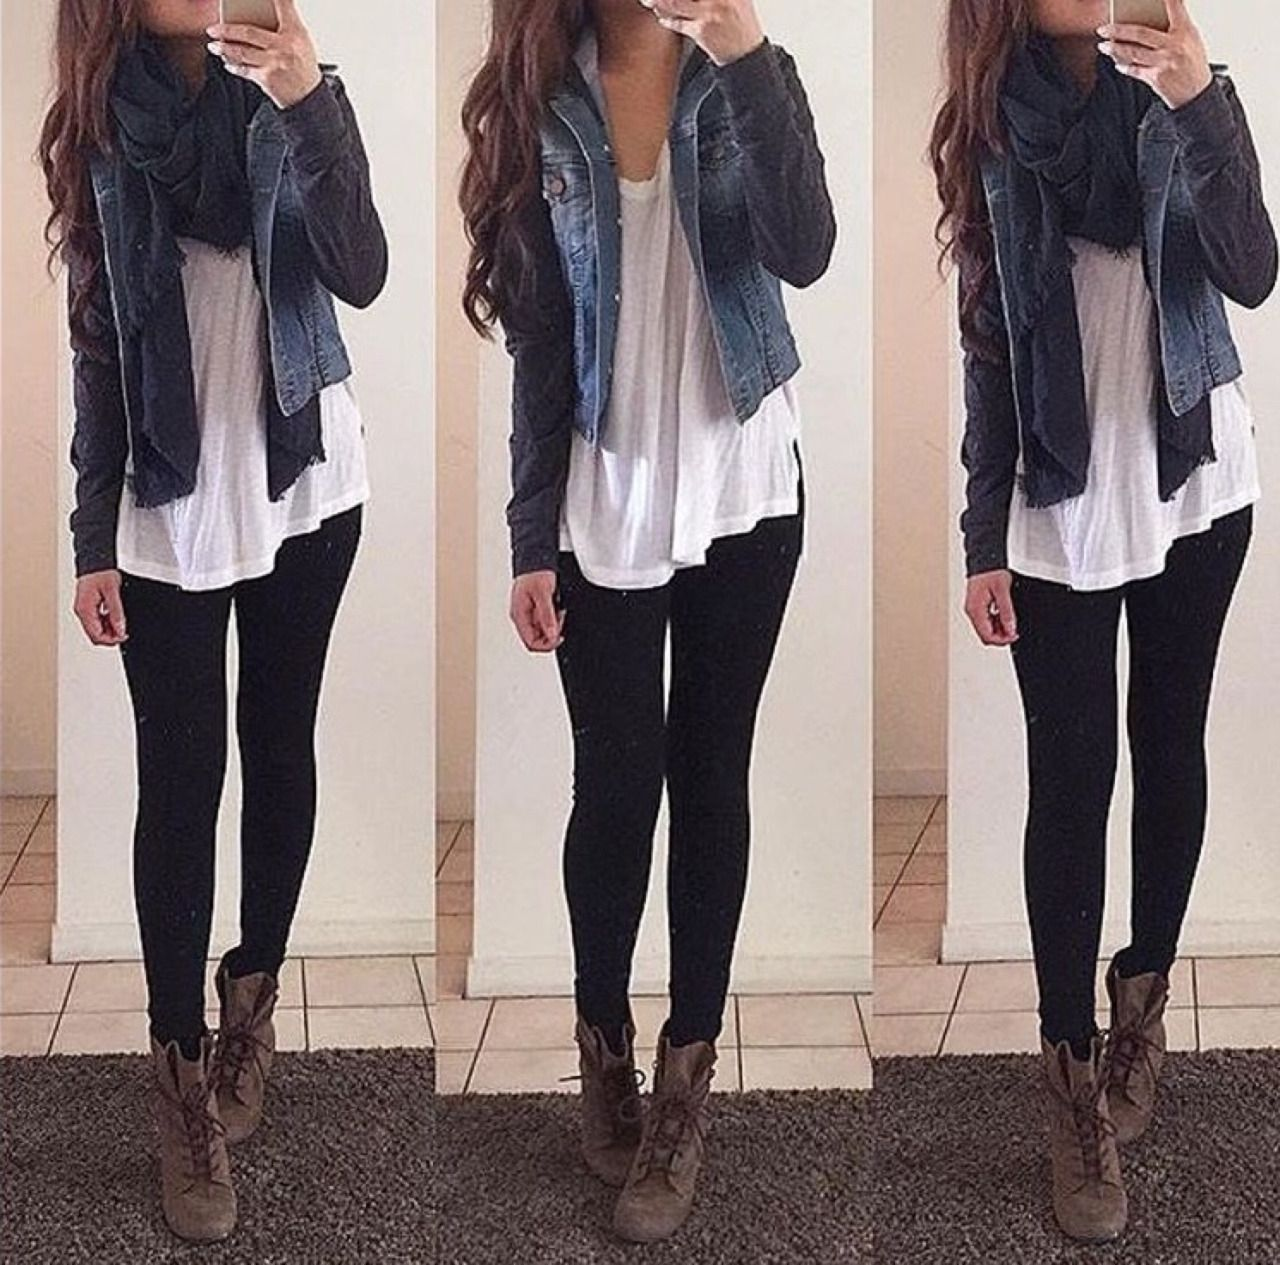 Black dress leggings - Astonishing Cute Winter Outfits Cute Outfits With Black Leggings Tumblr Fashion